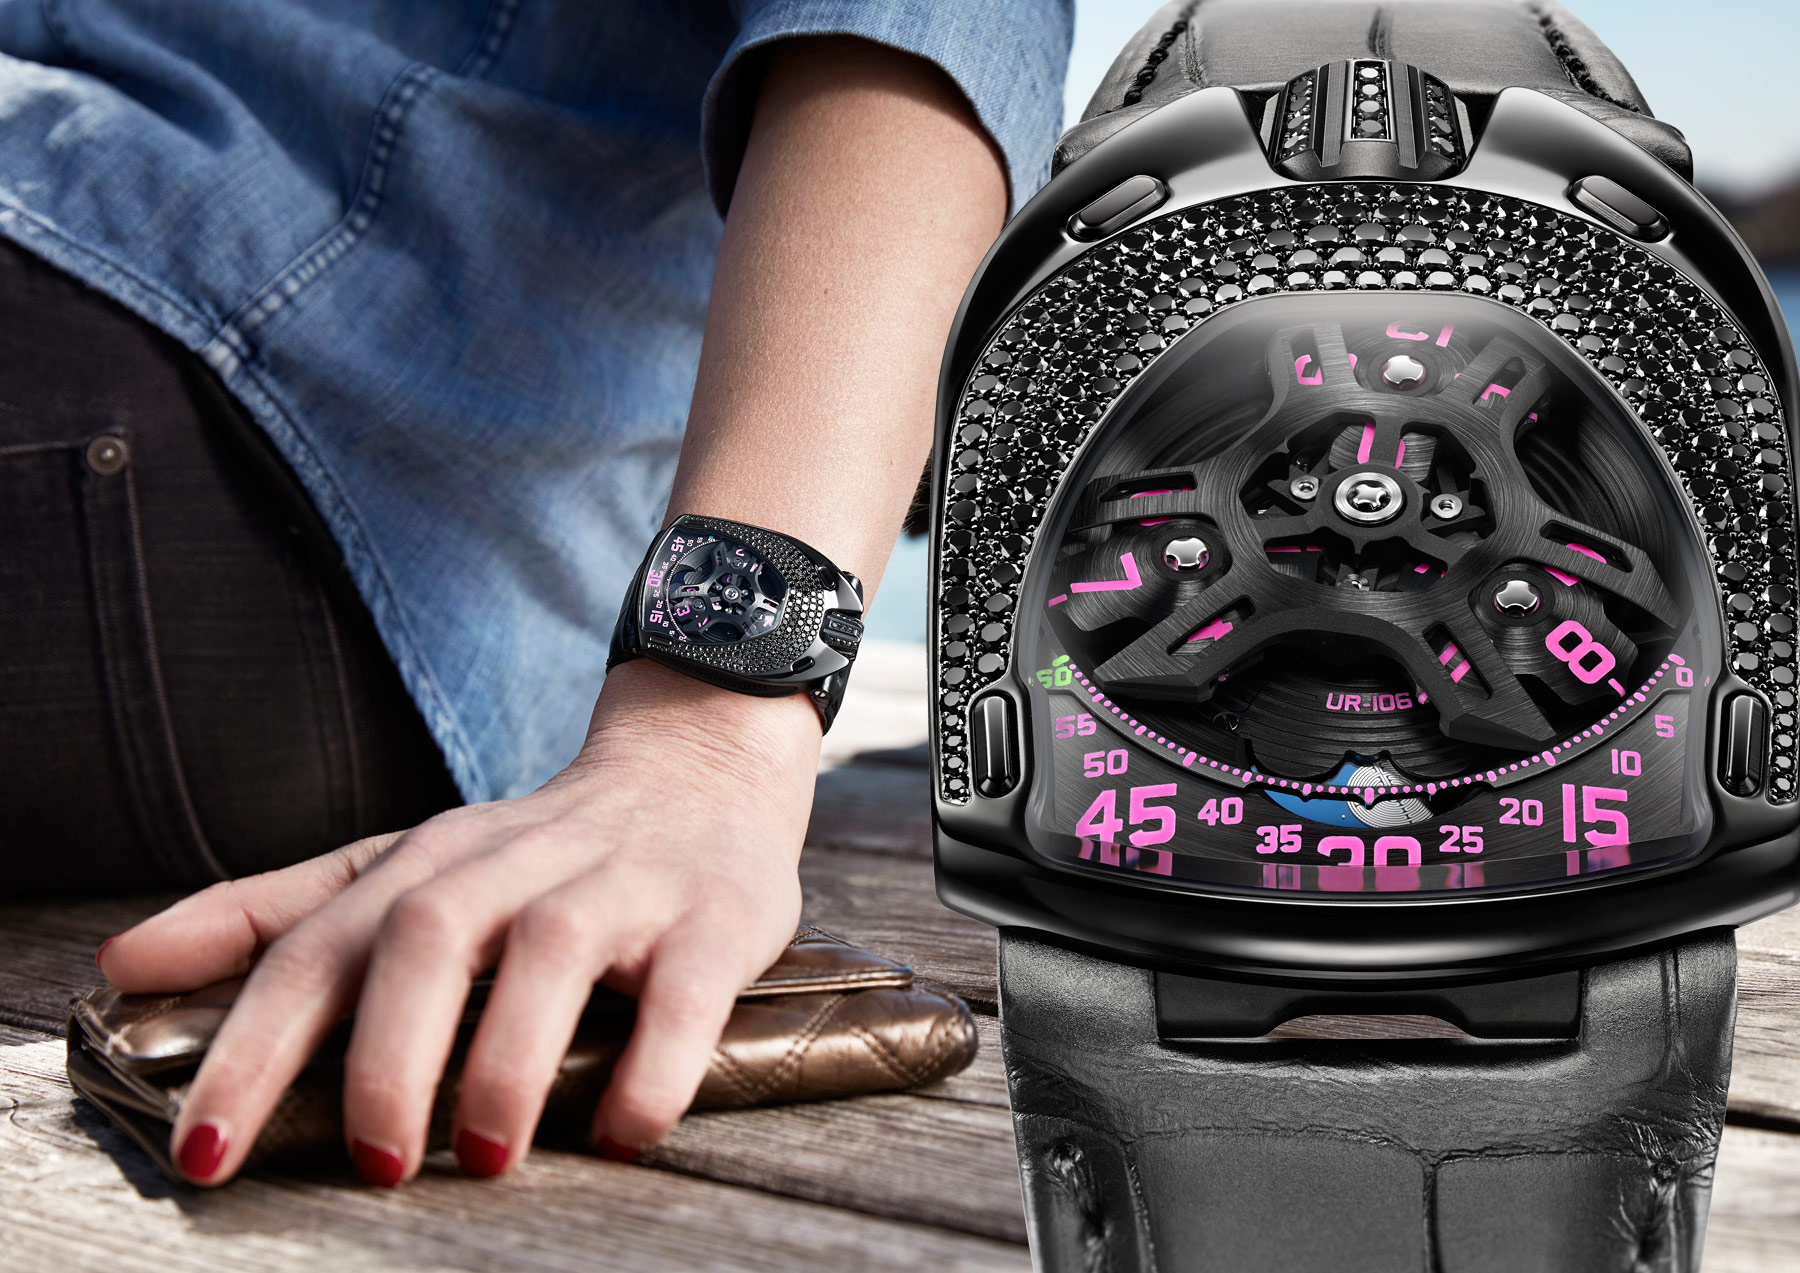 The Pink And Black Attack Is Back With The URWERK UR-106 Pink Lotus